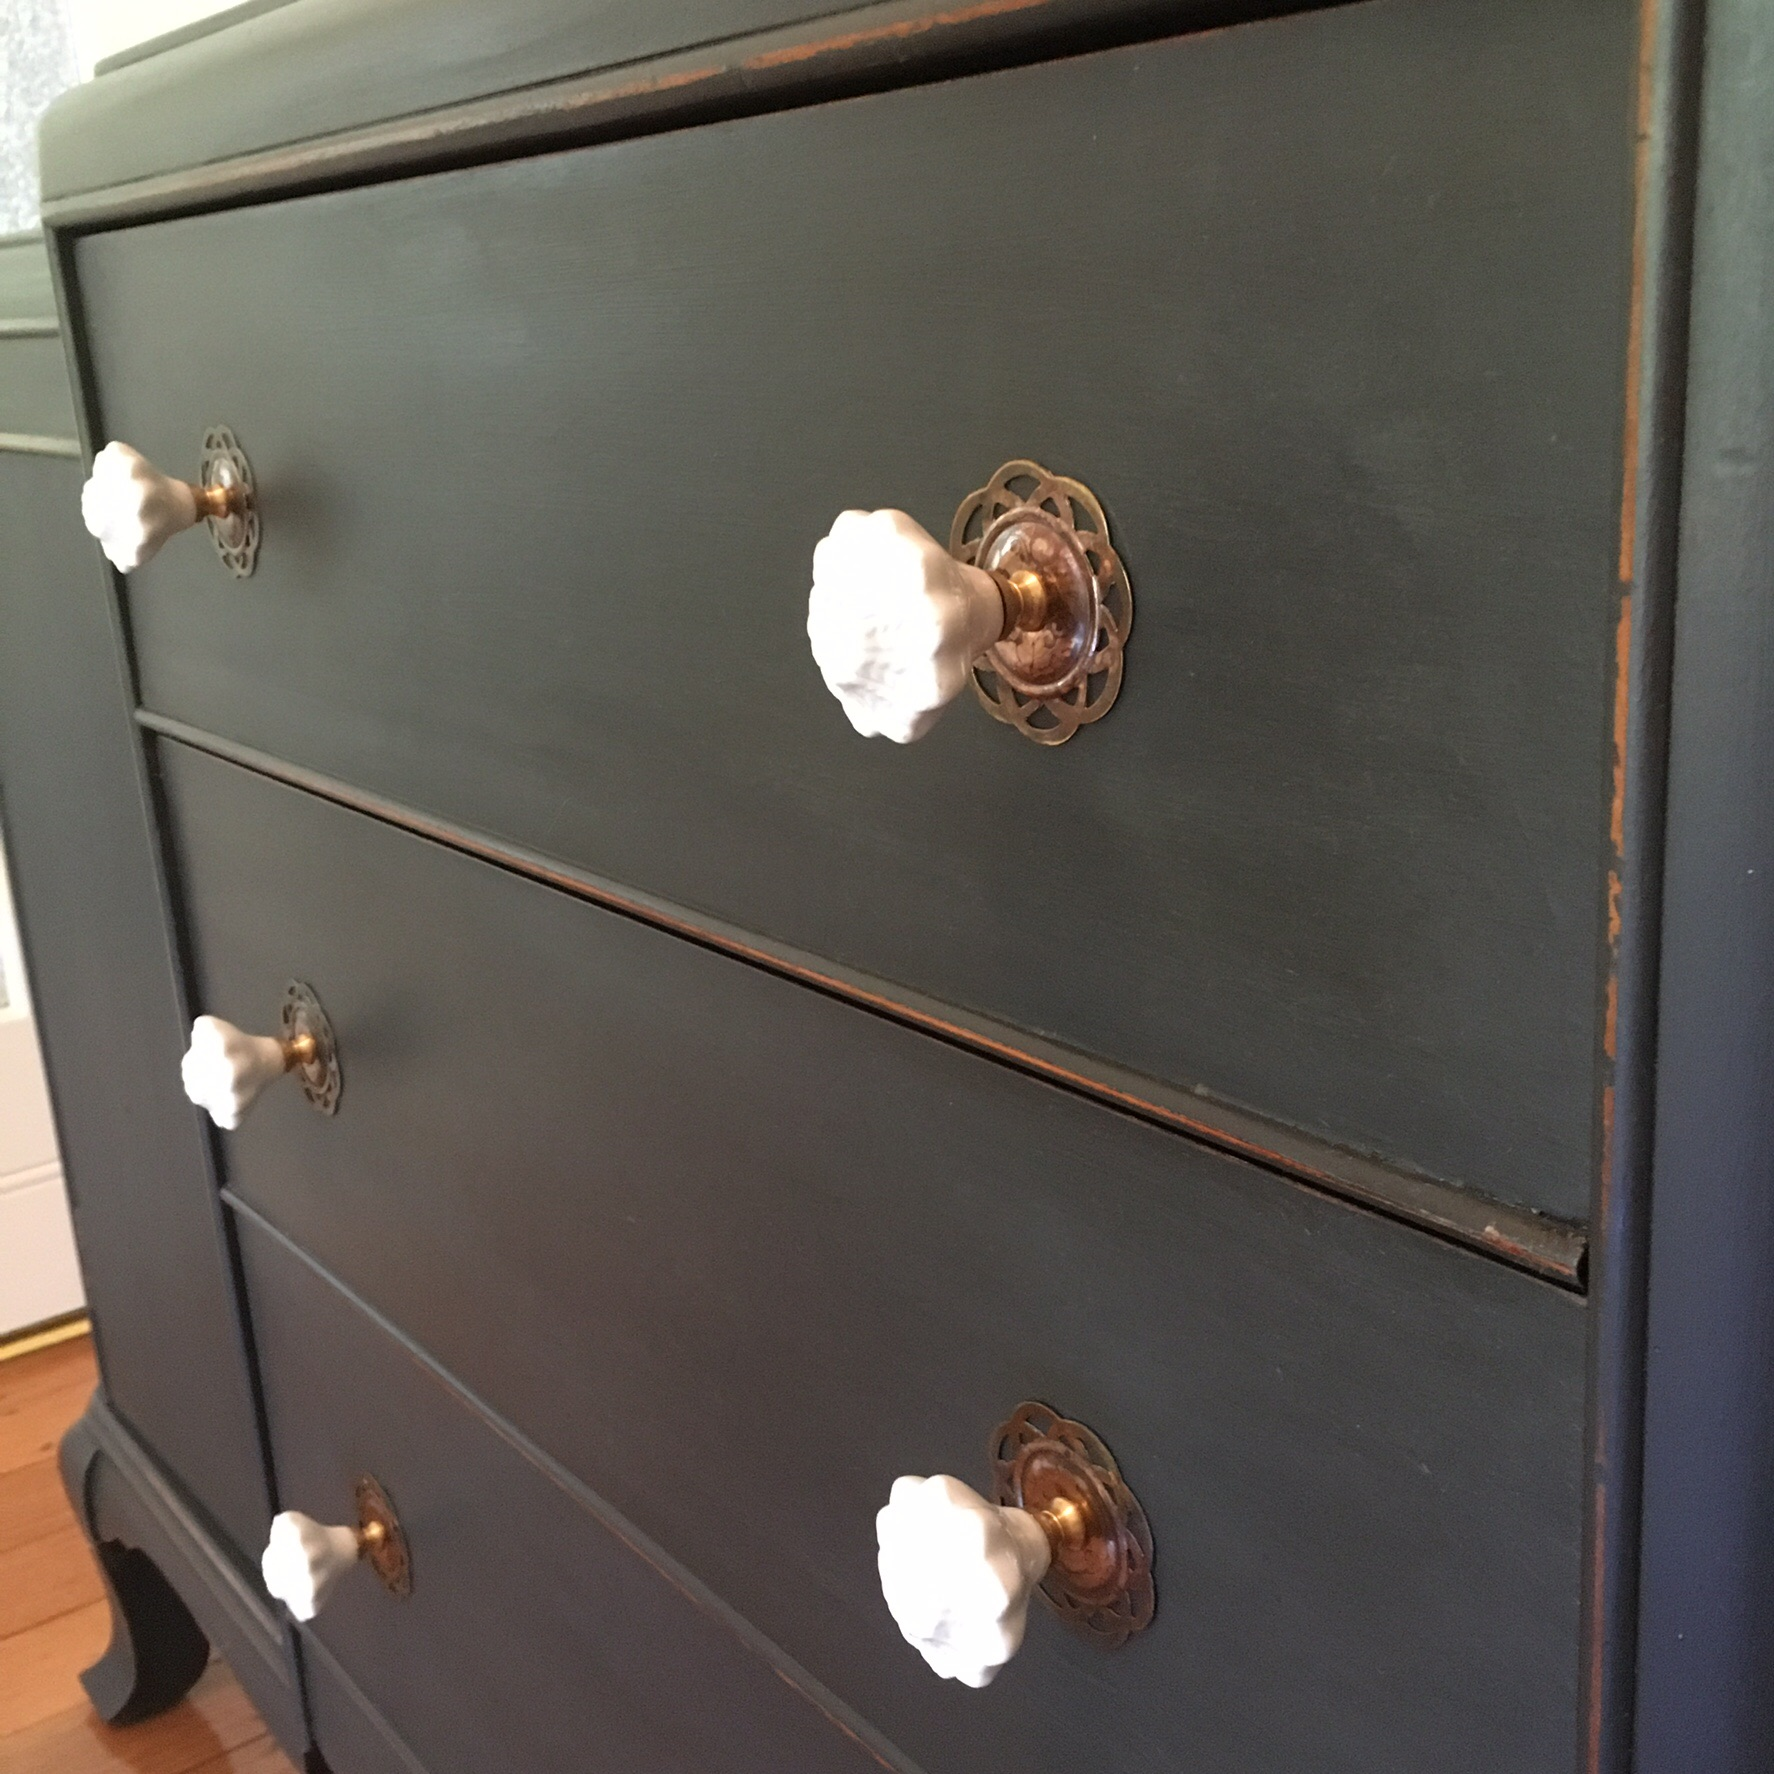 Vintage Sideboard Makeover in Graphite - by Rusty Blue Refashioned Furniture